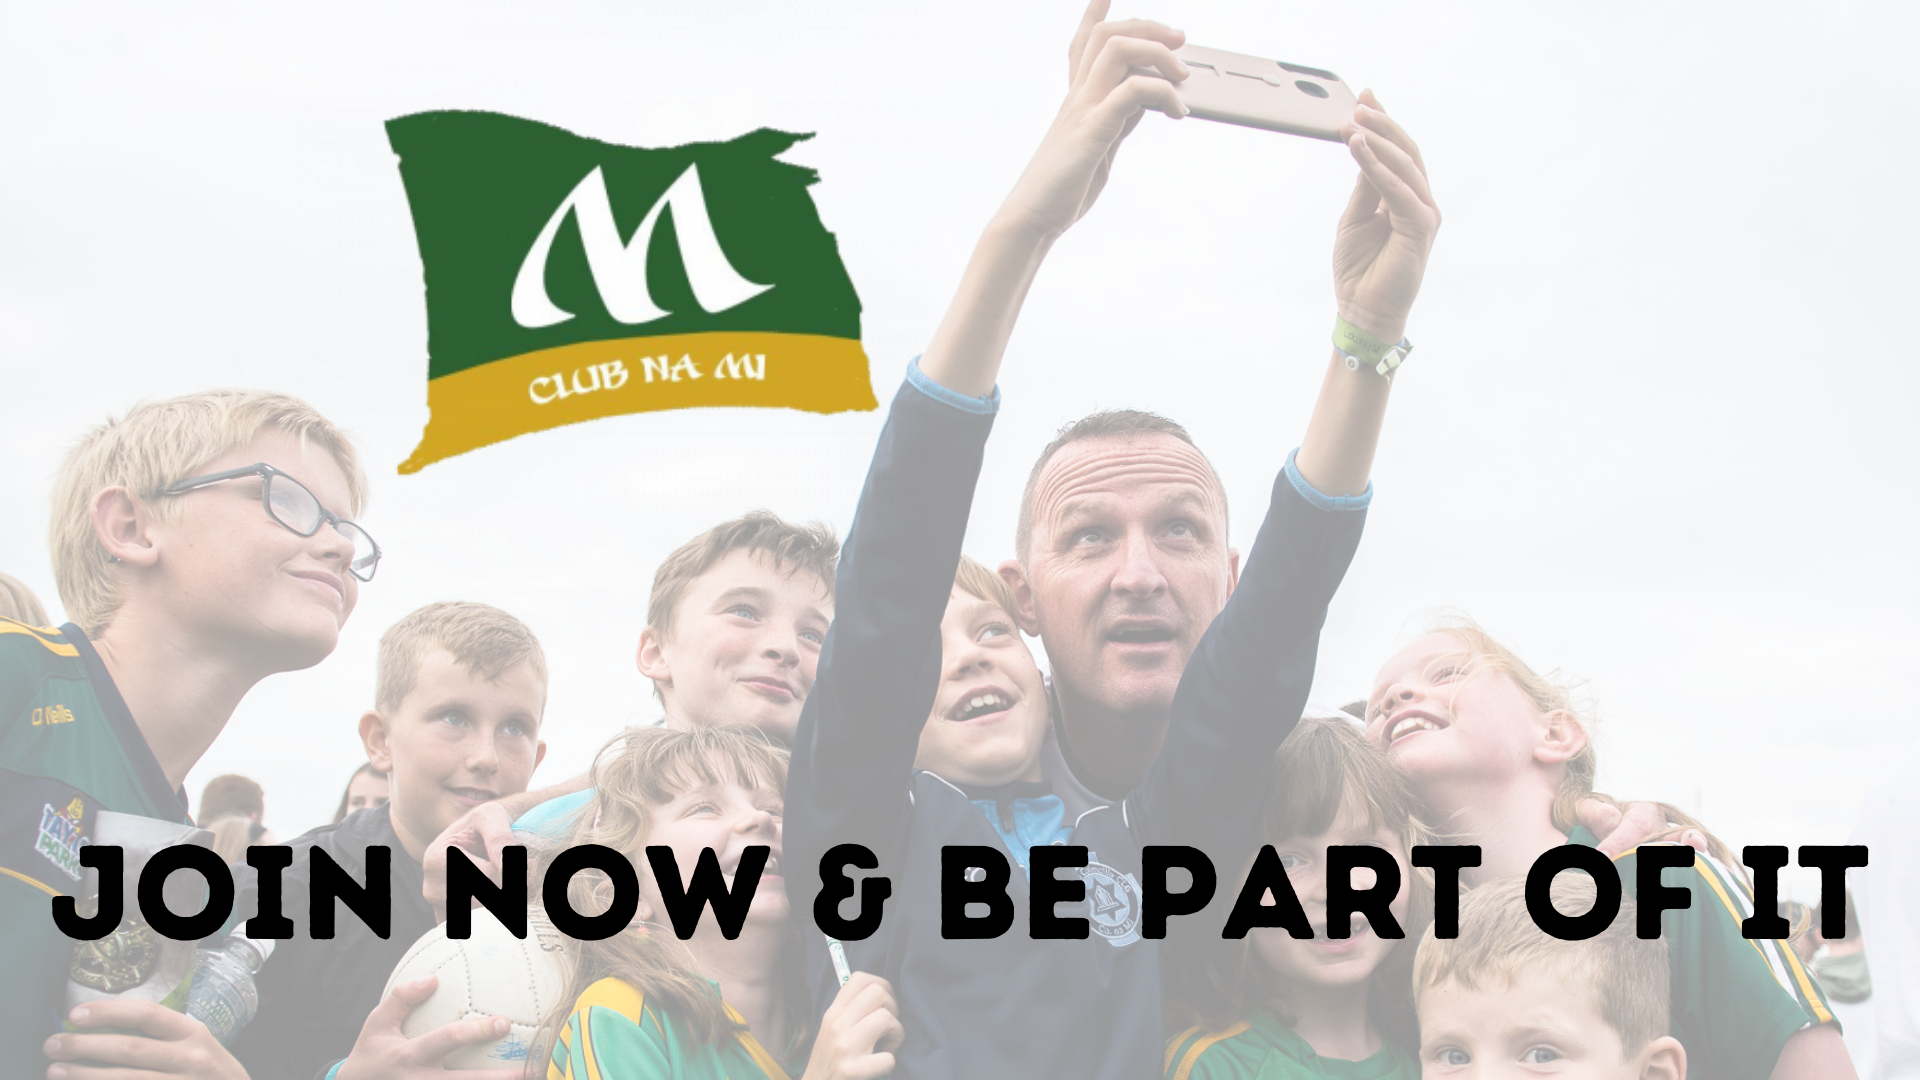 FREE Tickets to attend Meath v Kildare!